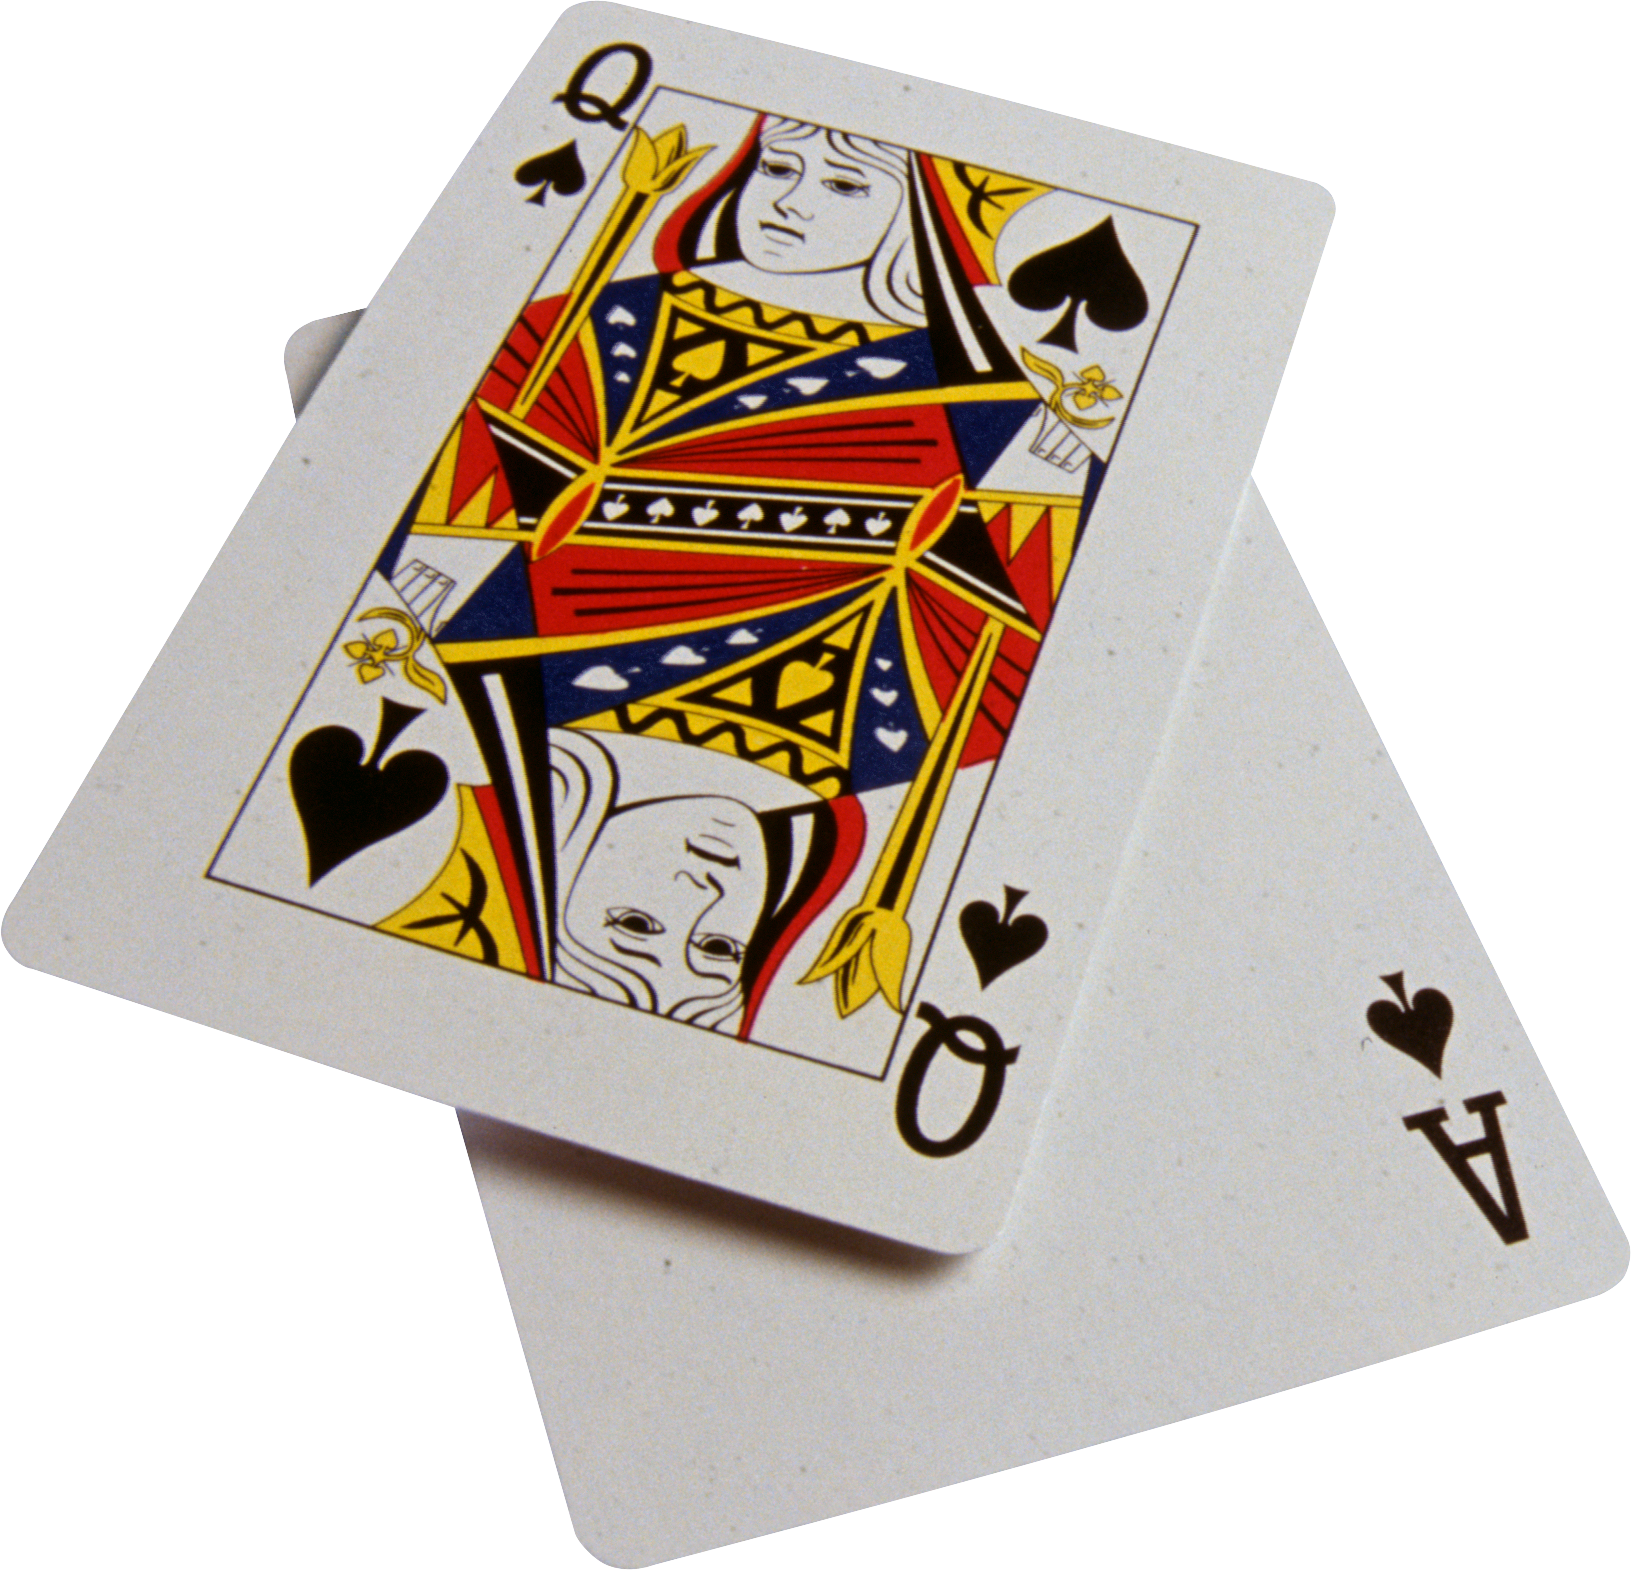 4 queen playing cards png. Images free download card